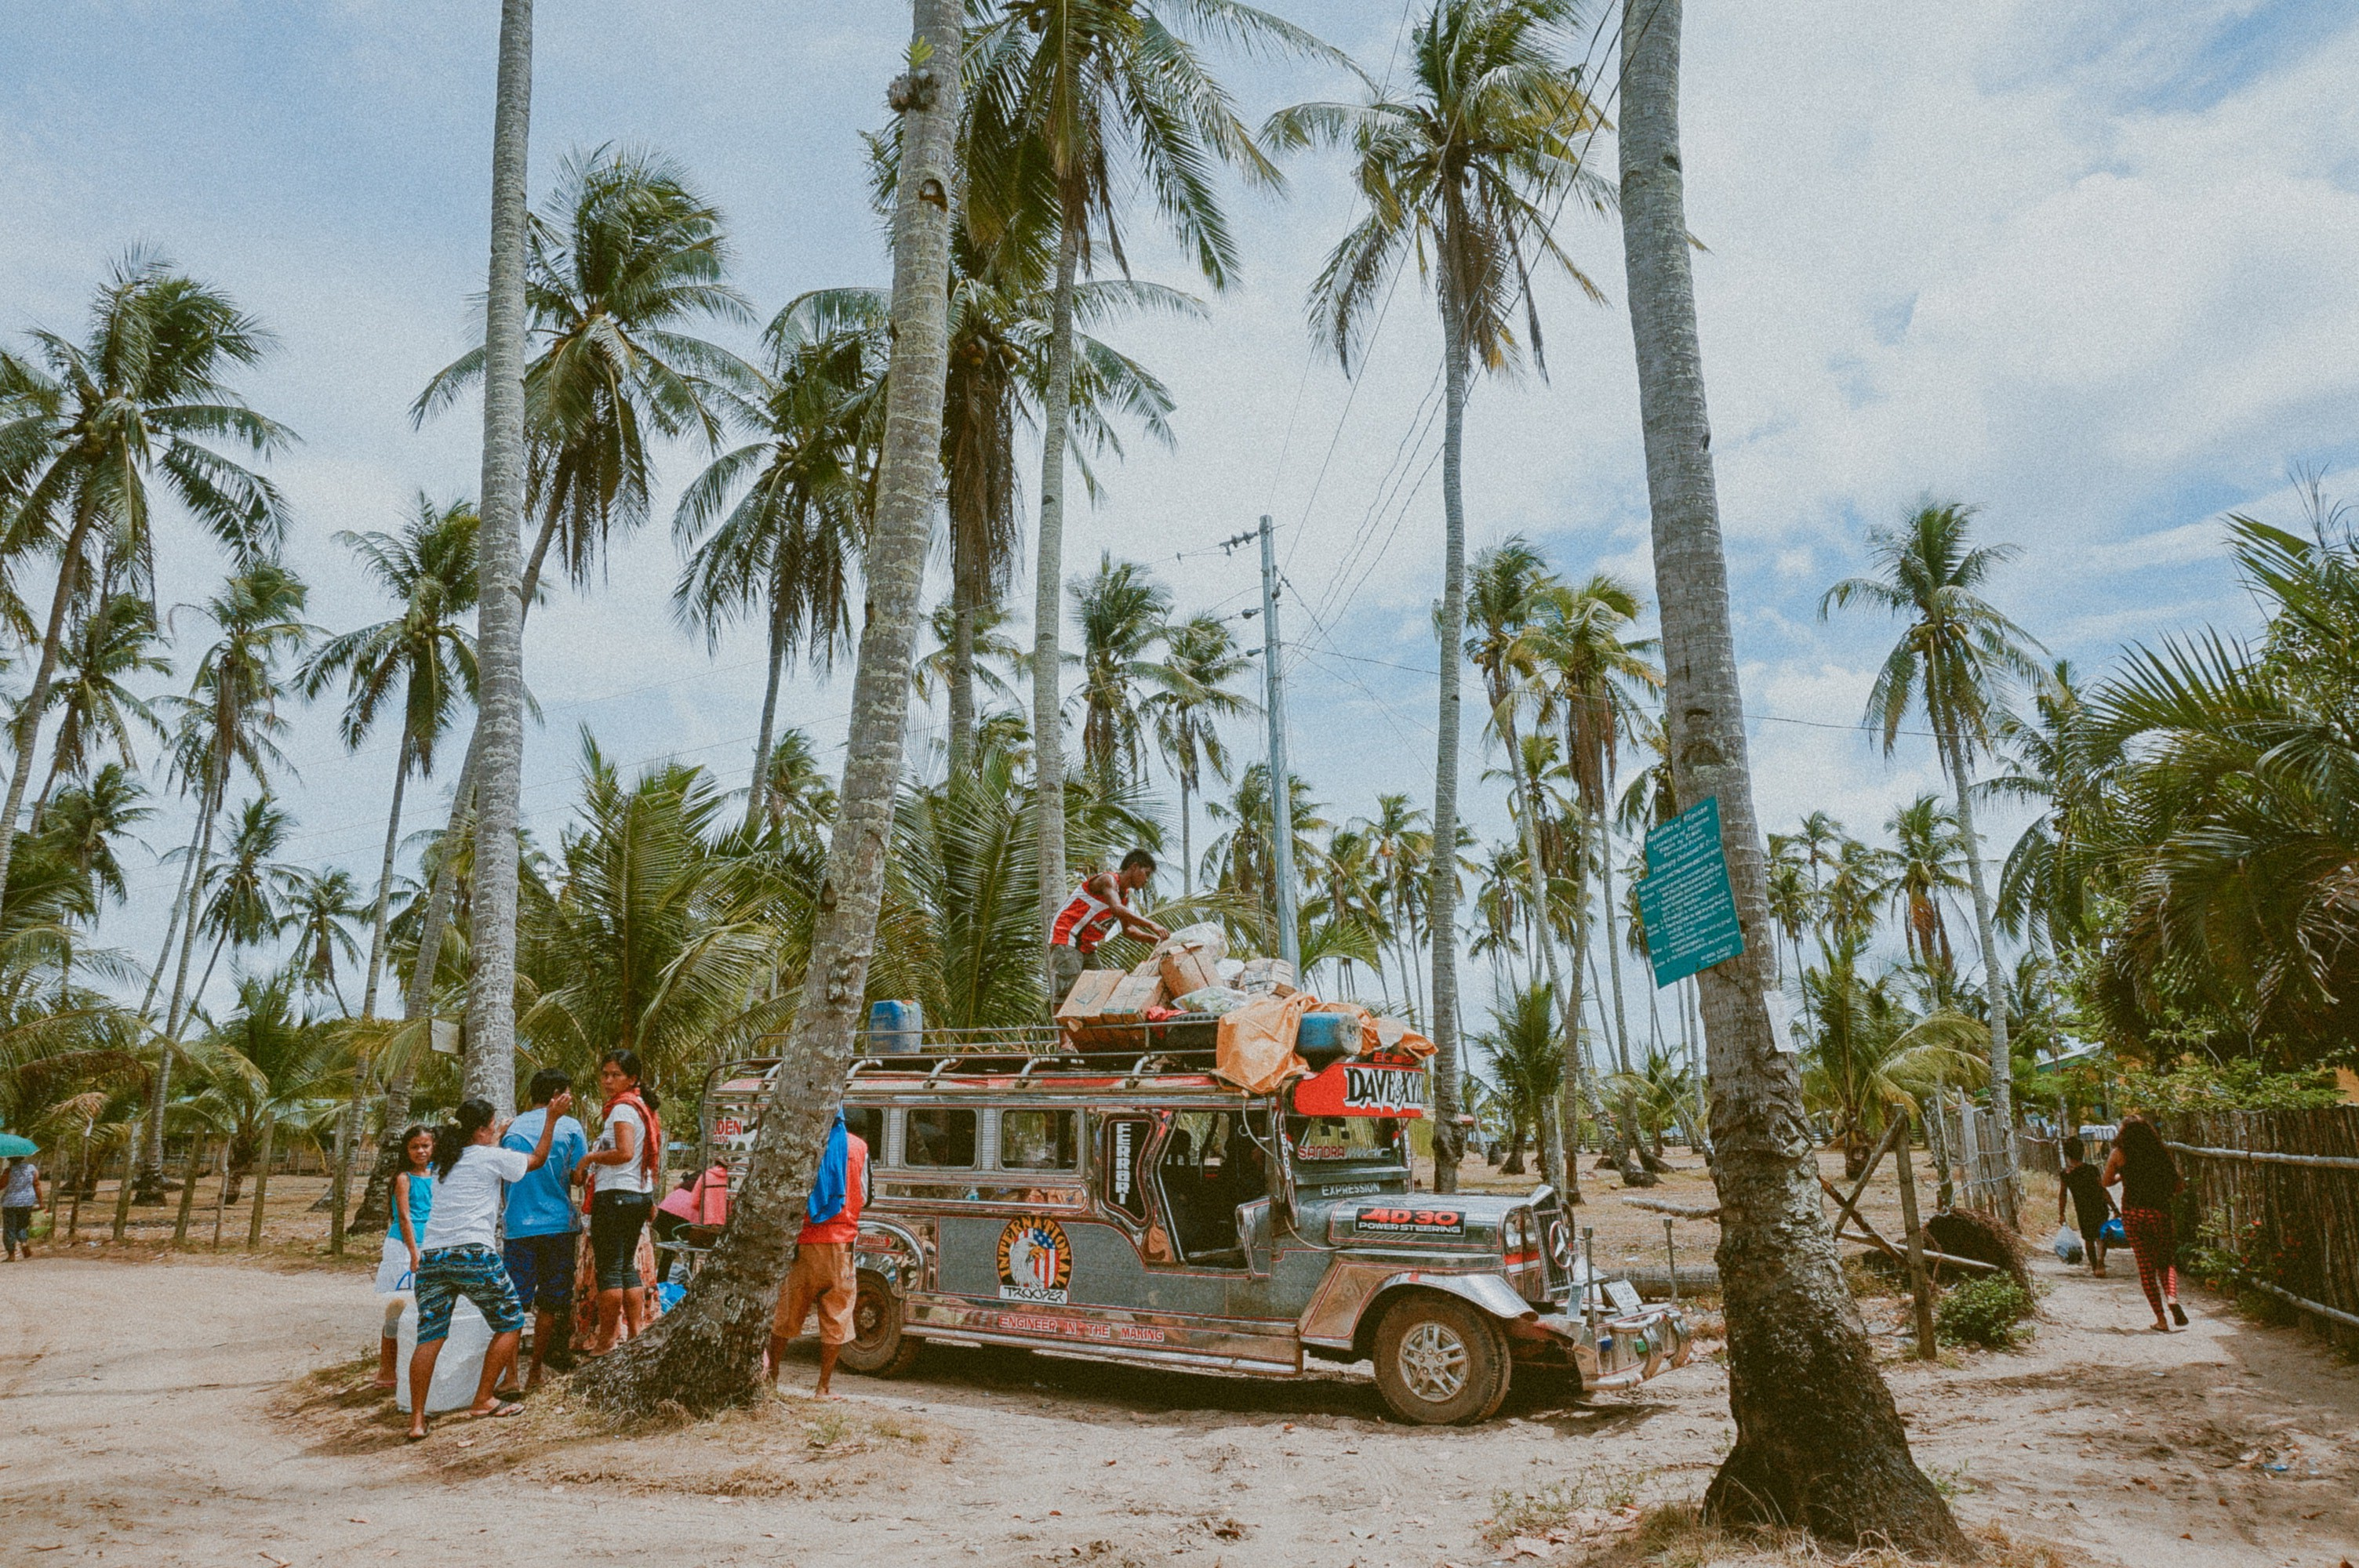 "<a href=""https://unsplash.com/photos/MGUC3WkLkWM"" target=""_blank"" rel=""noopener noreferrer"">Jeepney Ride 